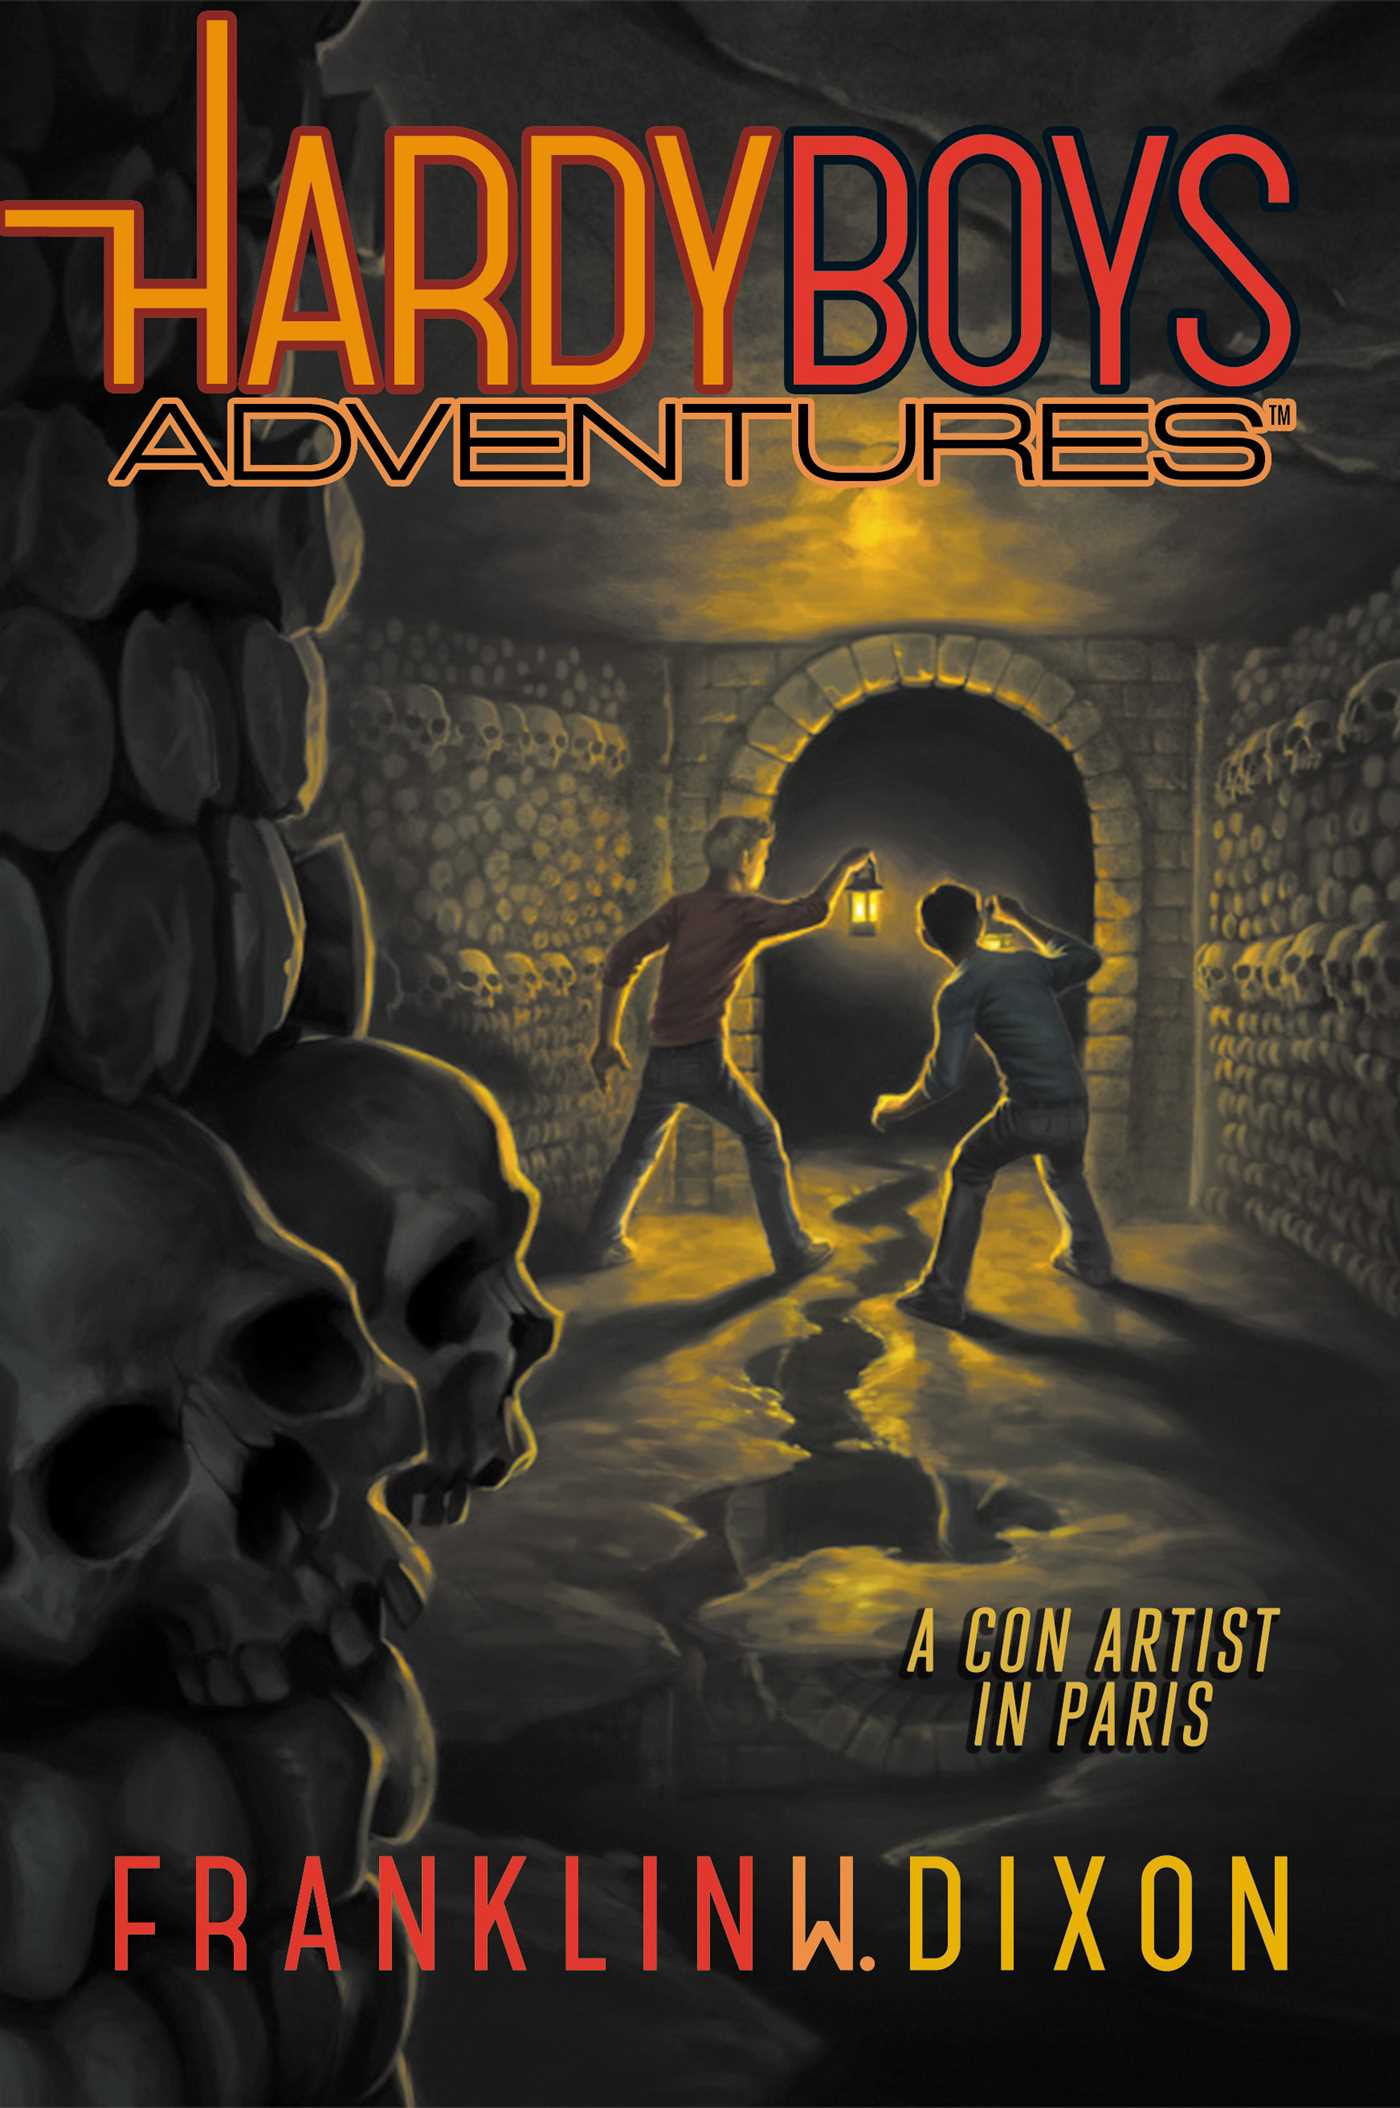 Hardy Boys Adventures #15 A Con Artist in Paris – Synopsis, Details, and Cover Art